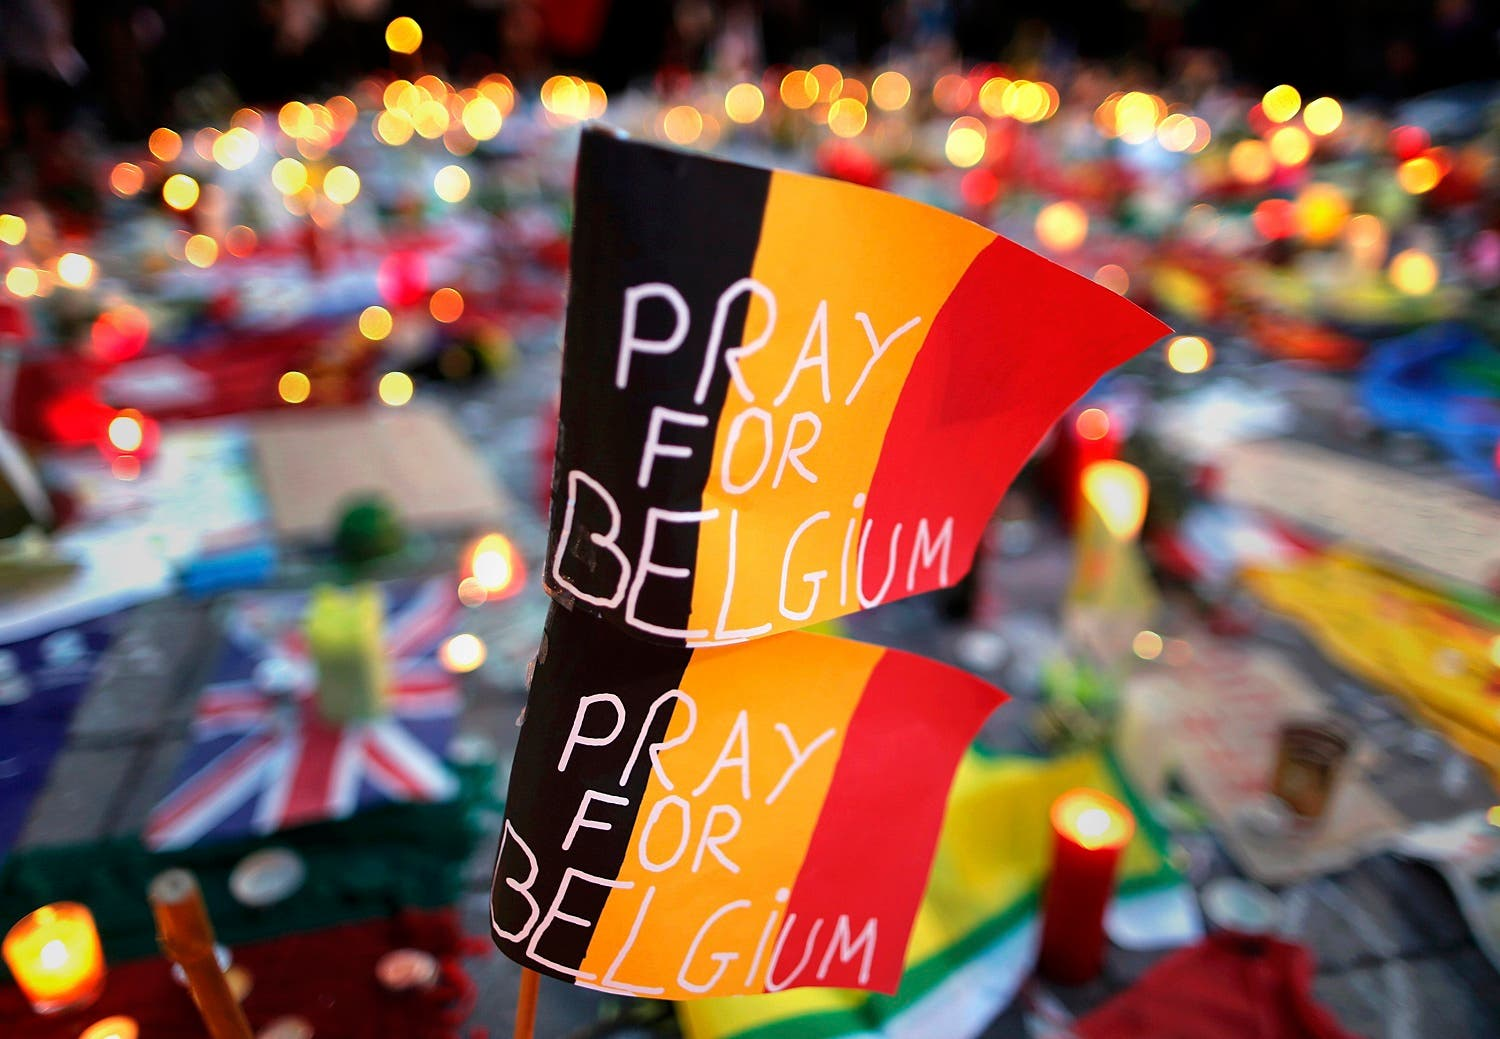 Belgian flags seen at a street memorial service near the old stock exchange in Brussels following Tuesday's bomb attacks in Brussels, Belgium, March 23, 2016. (Reuters)